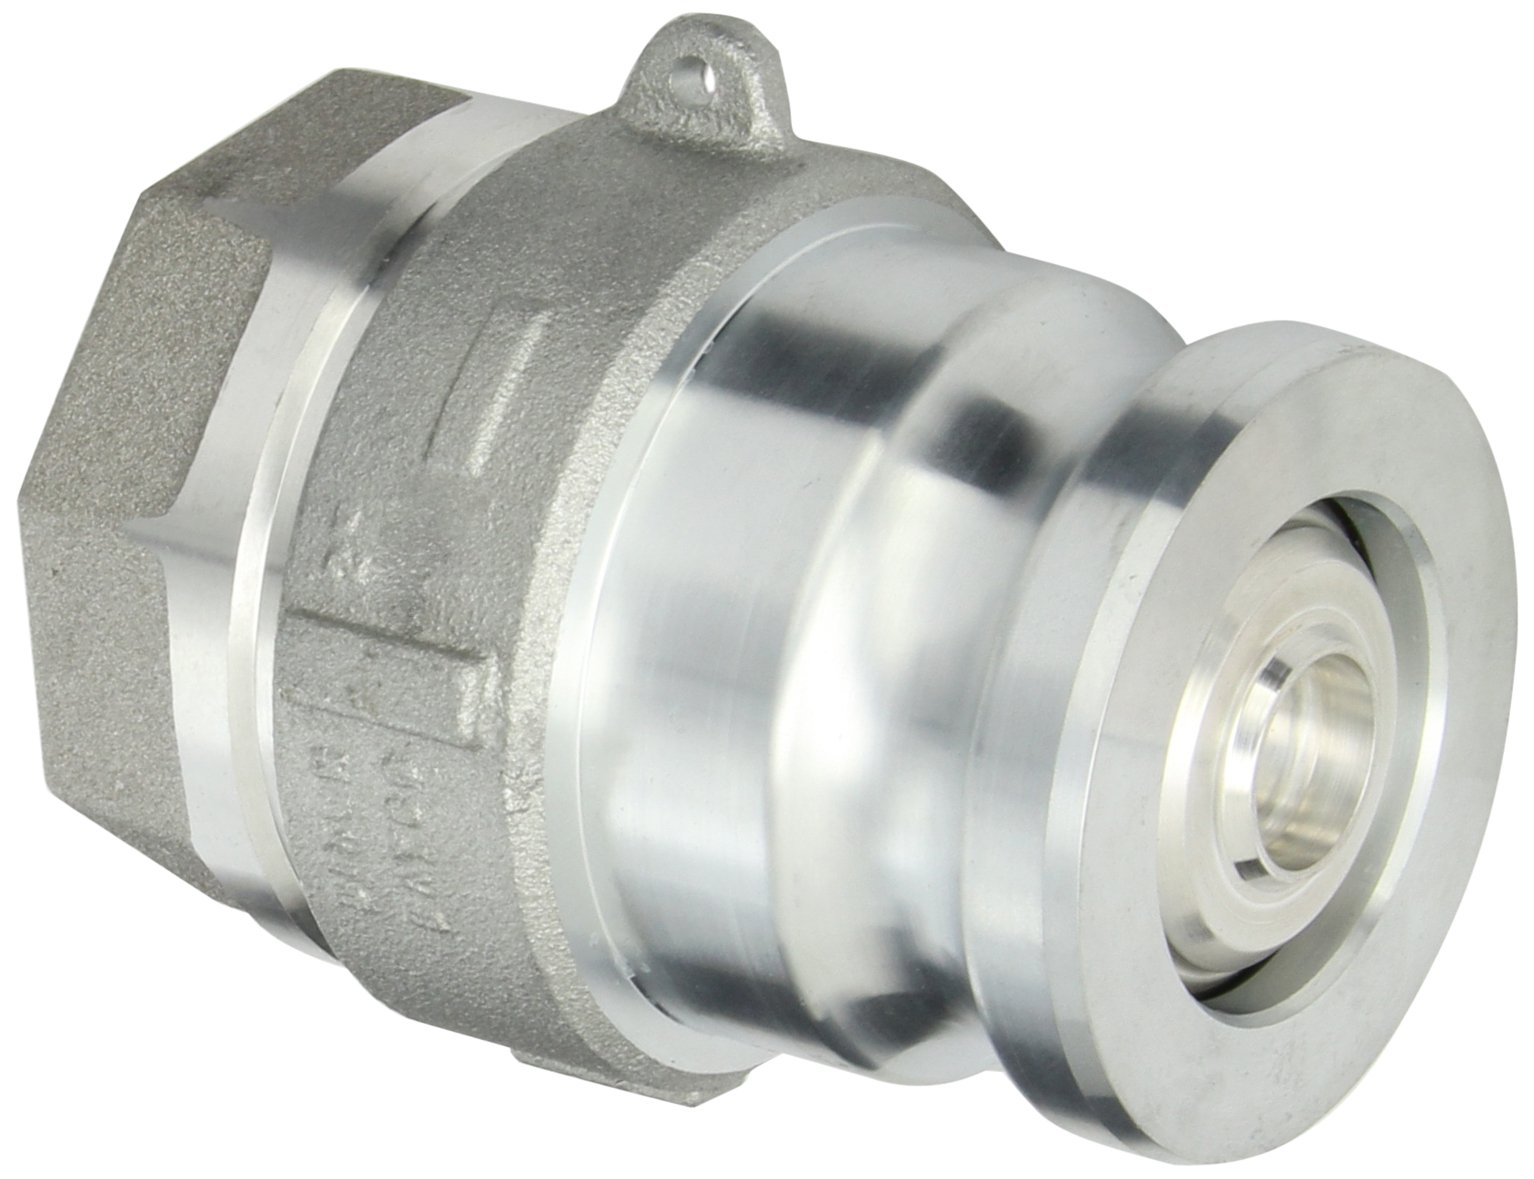 Dixon DBA12-200 Aluminum Dry Break Cam and Groove Dry Disconnect Hose Fitting, 2-1/2'' Plug x 2'' NPT Female